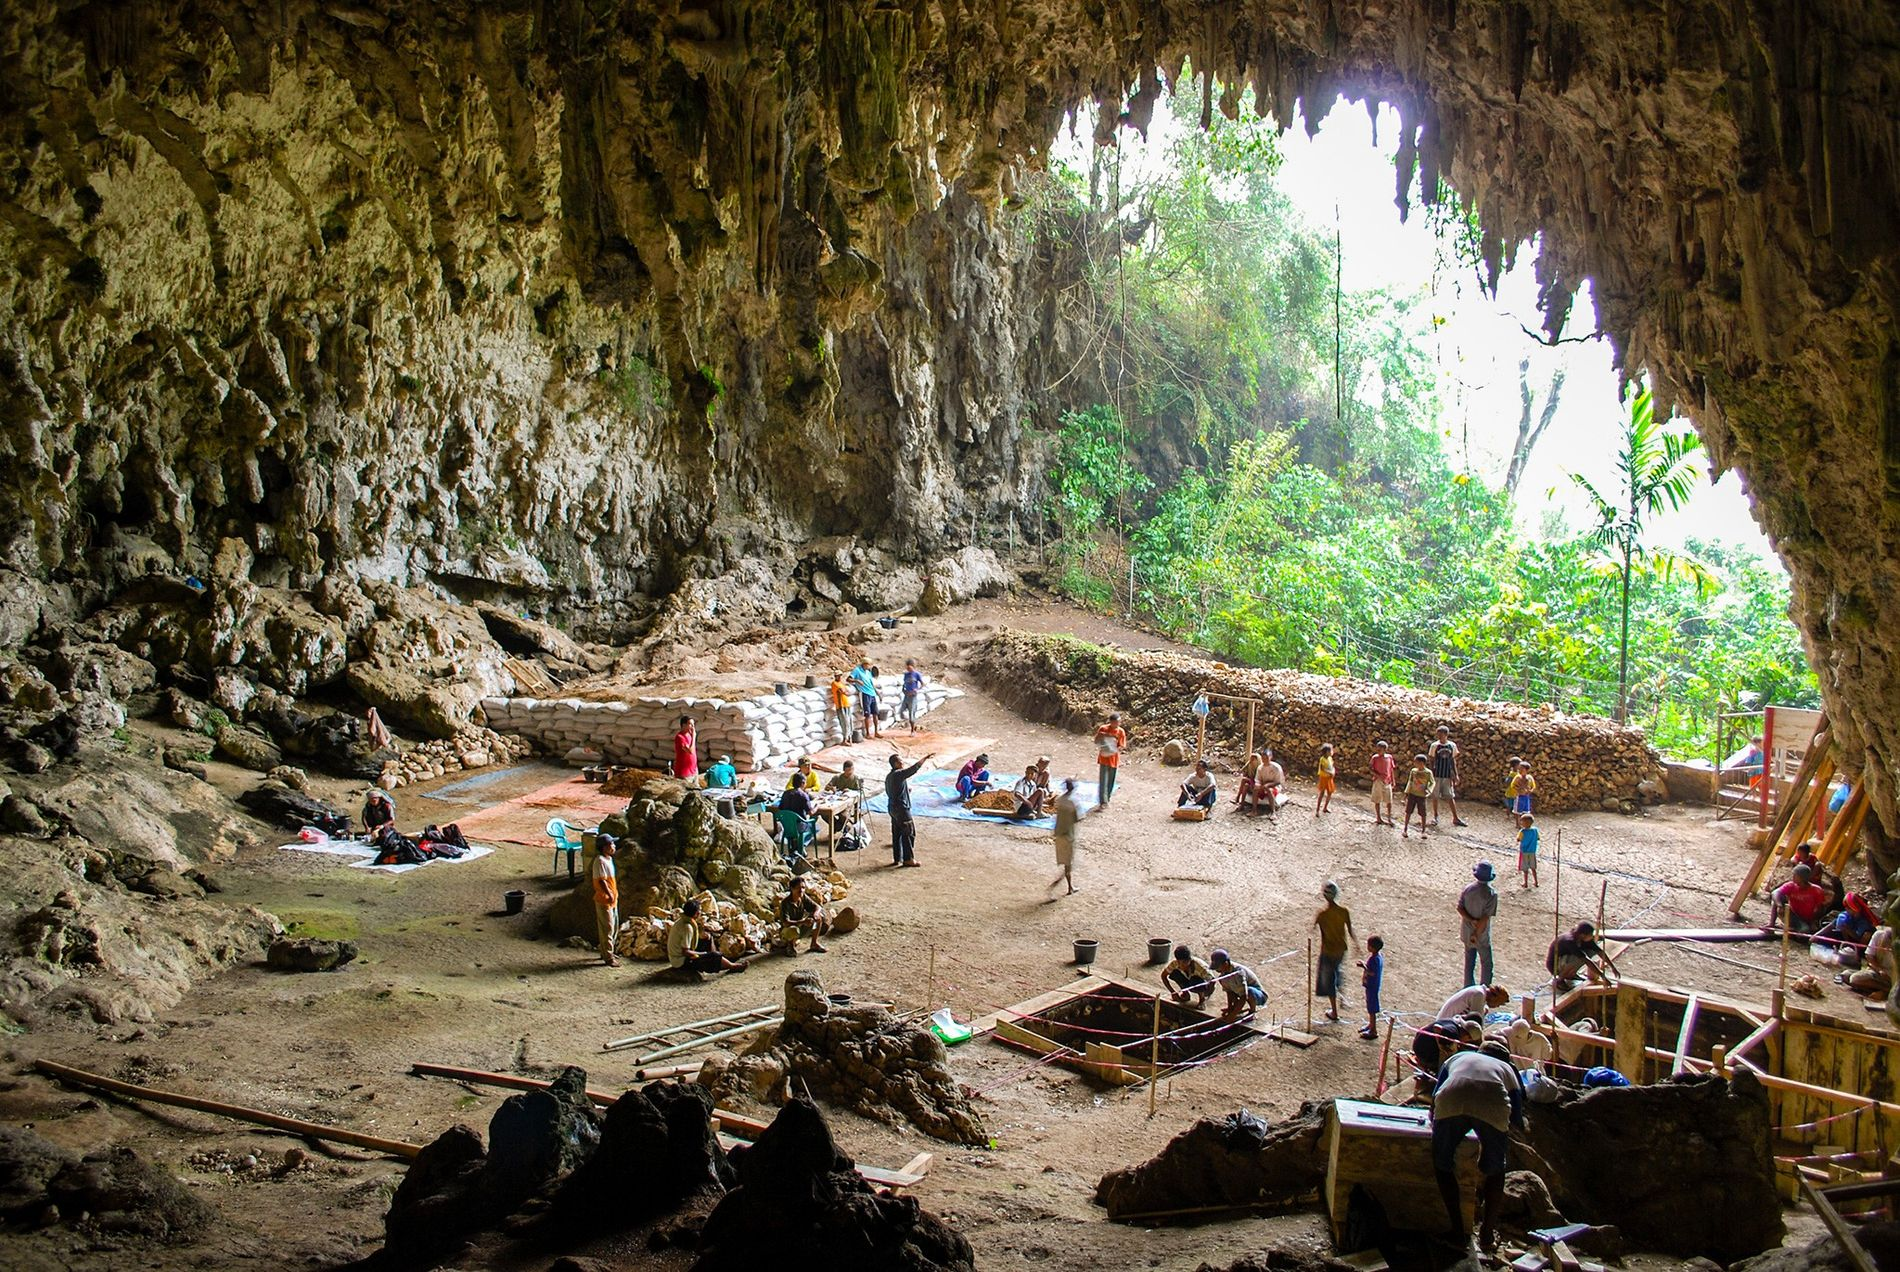 Archaeologists excavate in Liang Bua, a limestone cave on the Indonesian island of Flores where the ...